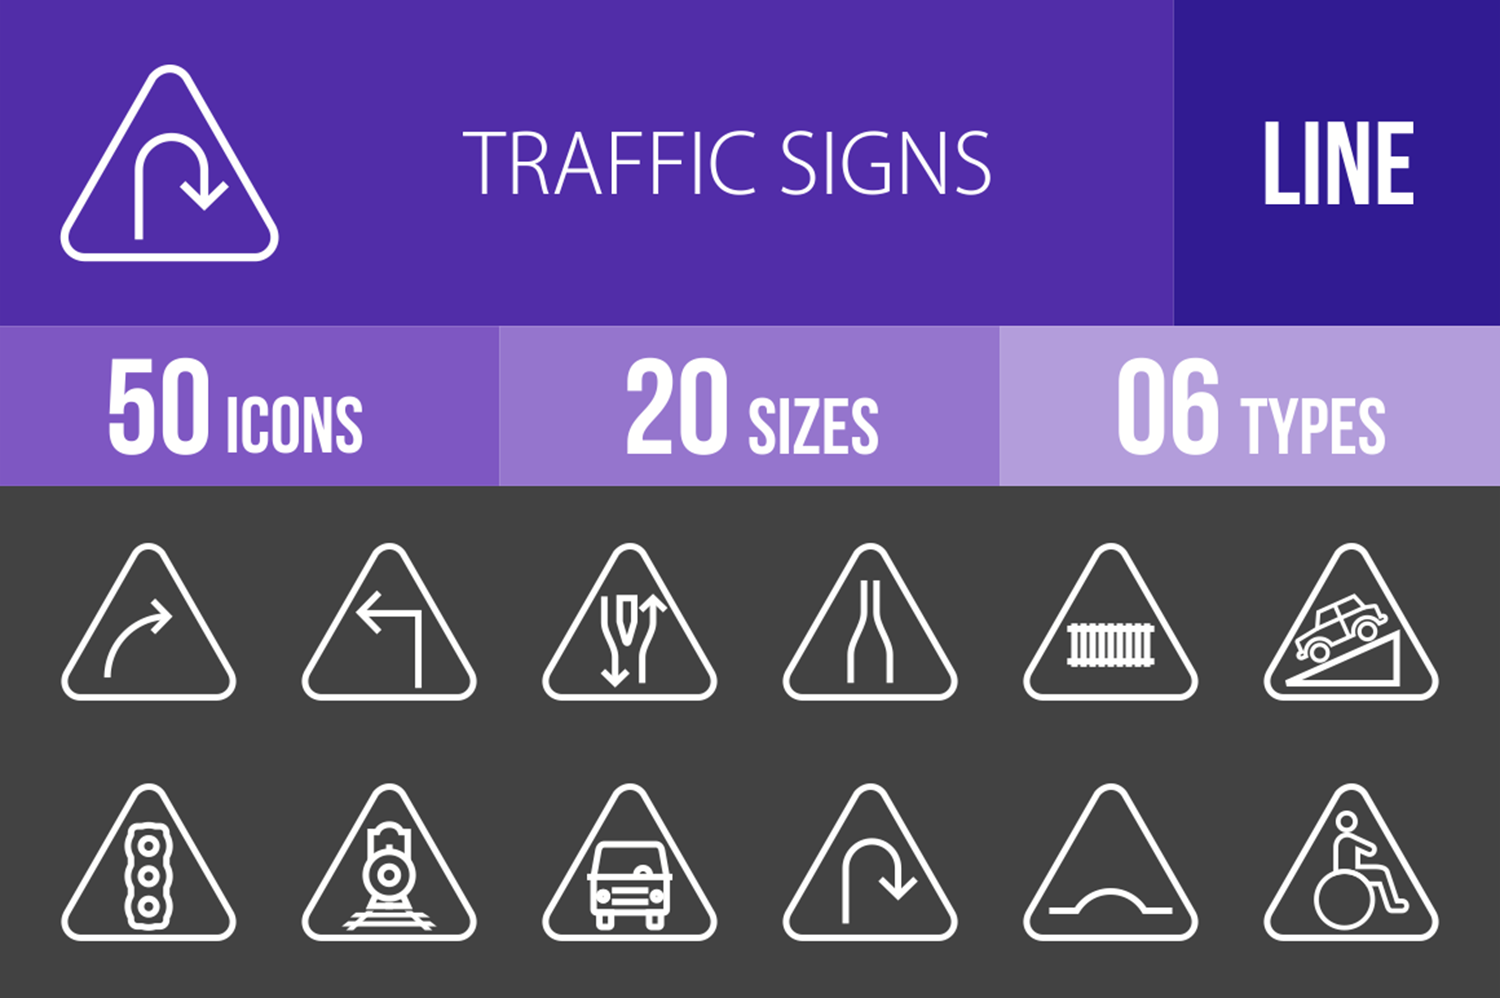 50 Traffic Signs Line Inverted Icons example image 1